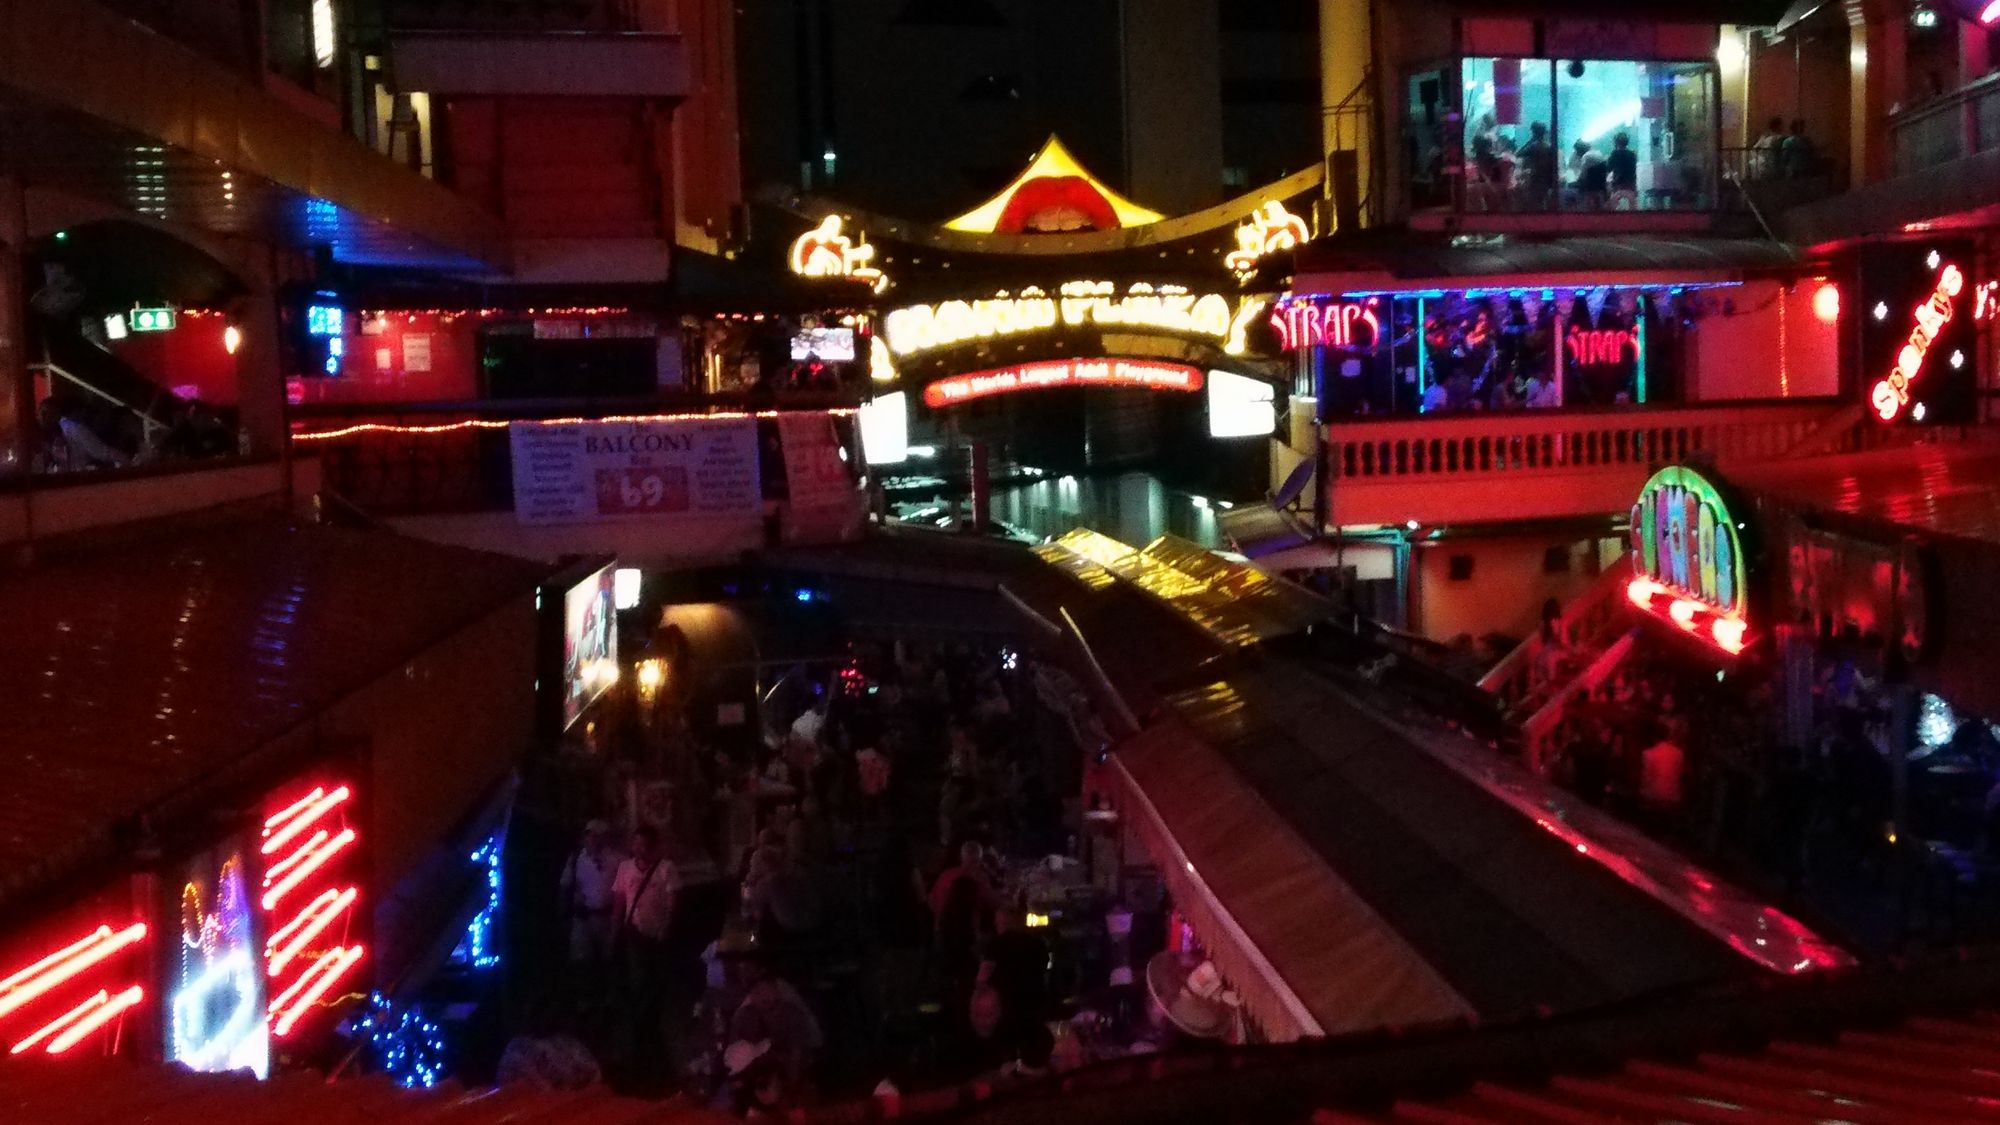 nana plaza chat Want to know what it is really like in soi cowboy and nana plaza in bangkok read my review of what you should expect if you go into either places.